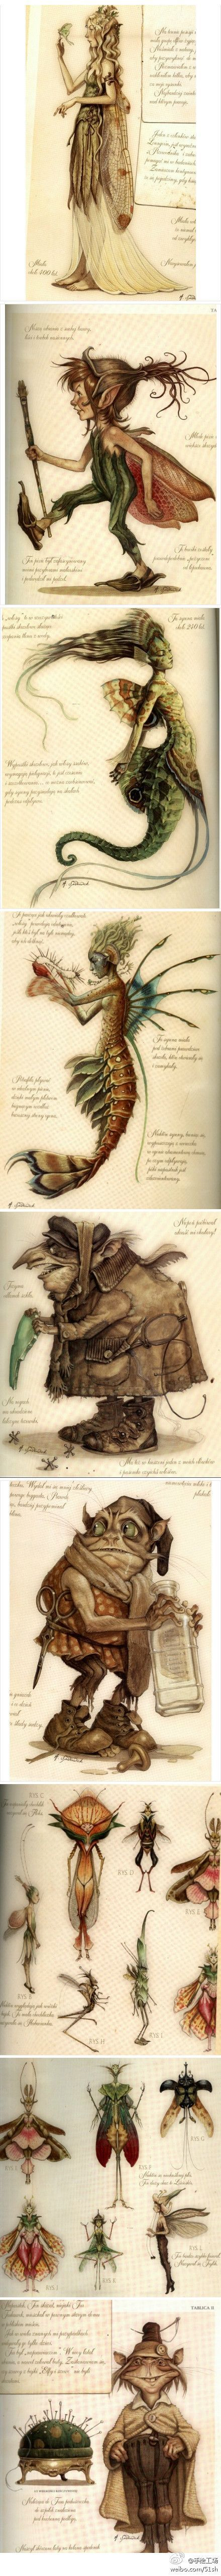 Goblins & Fairies Explained - art by Tony DiTerlizzi